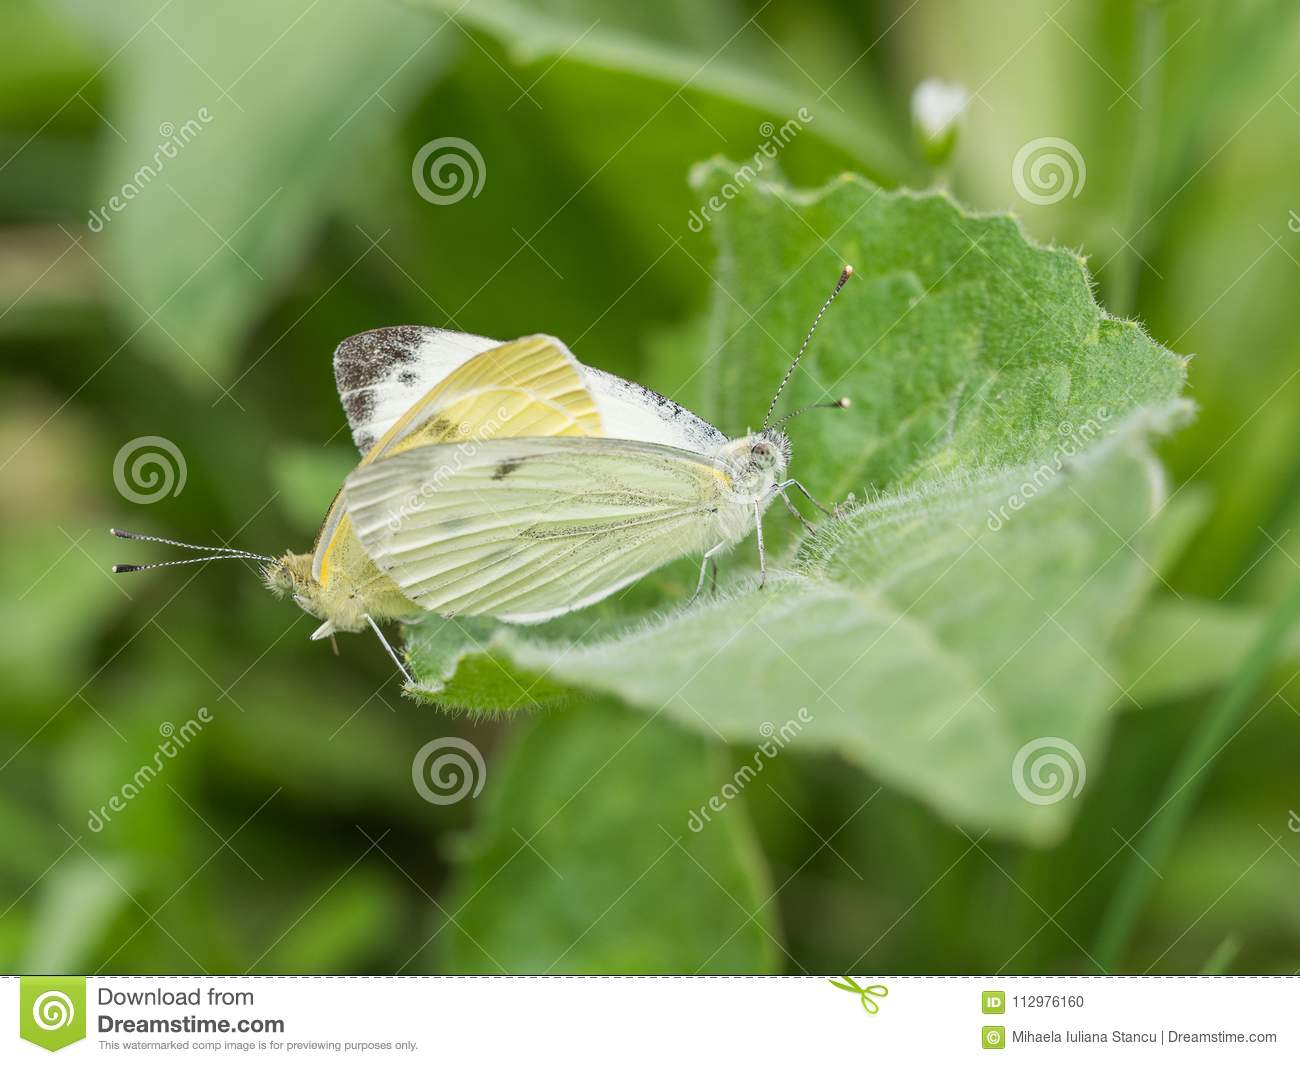 Closeup of two white butterflies mating on a green leaf